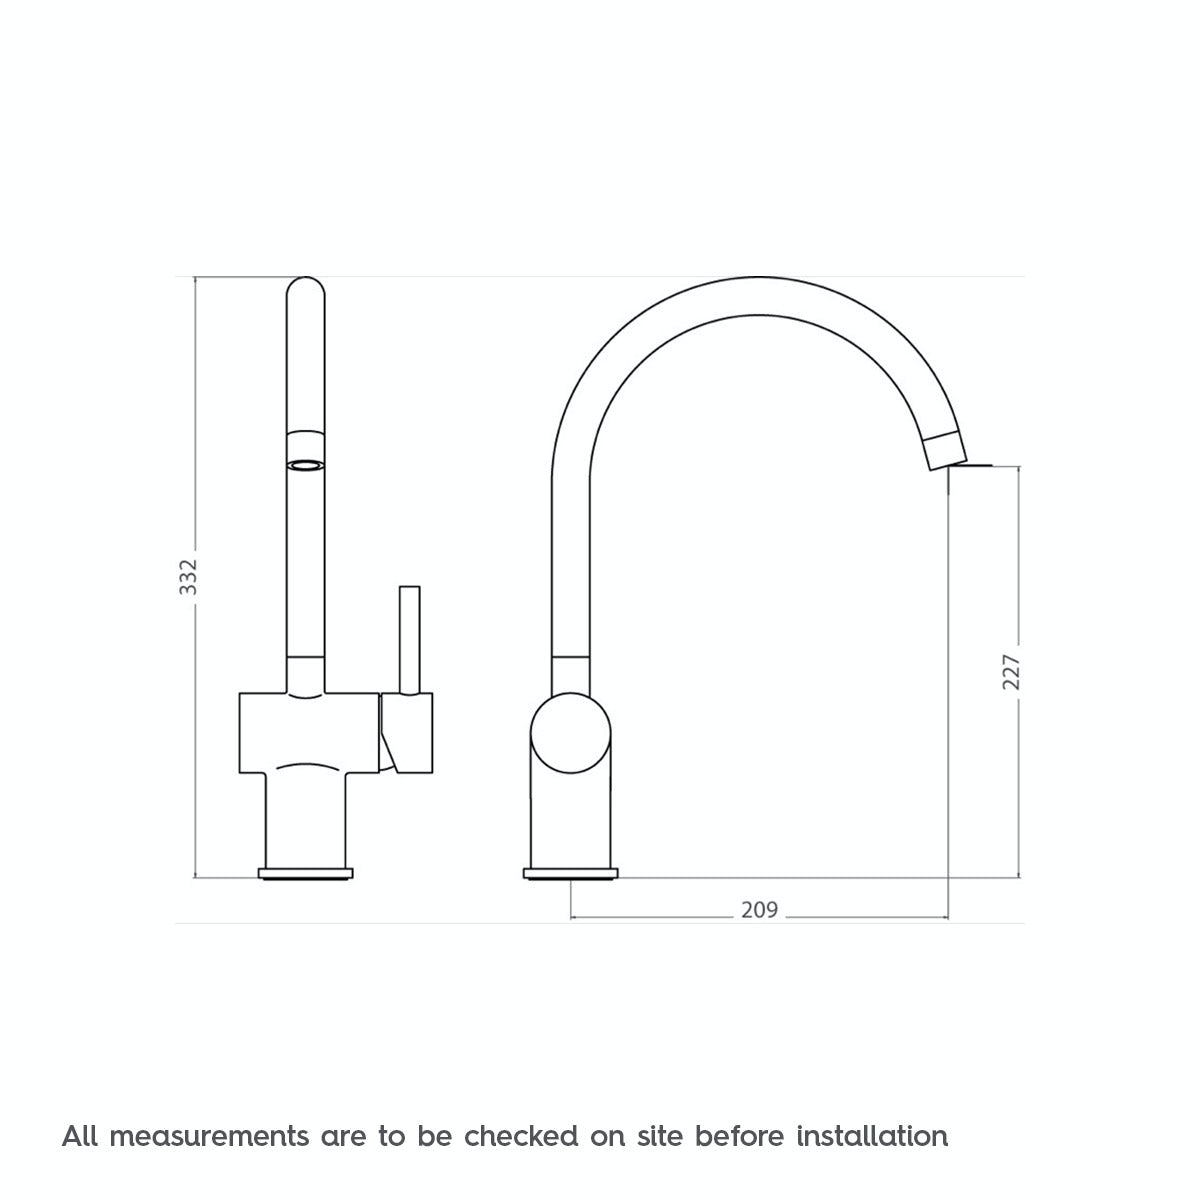 Dimensions for Phaze side action kitchen tap